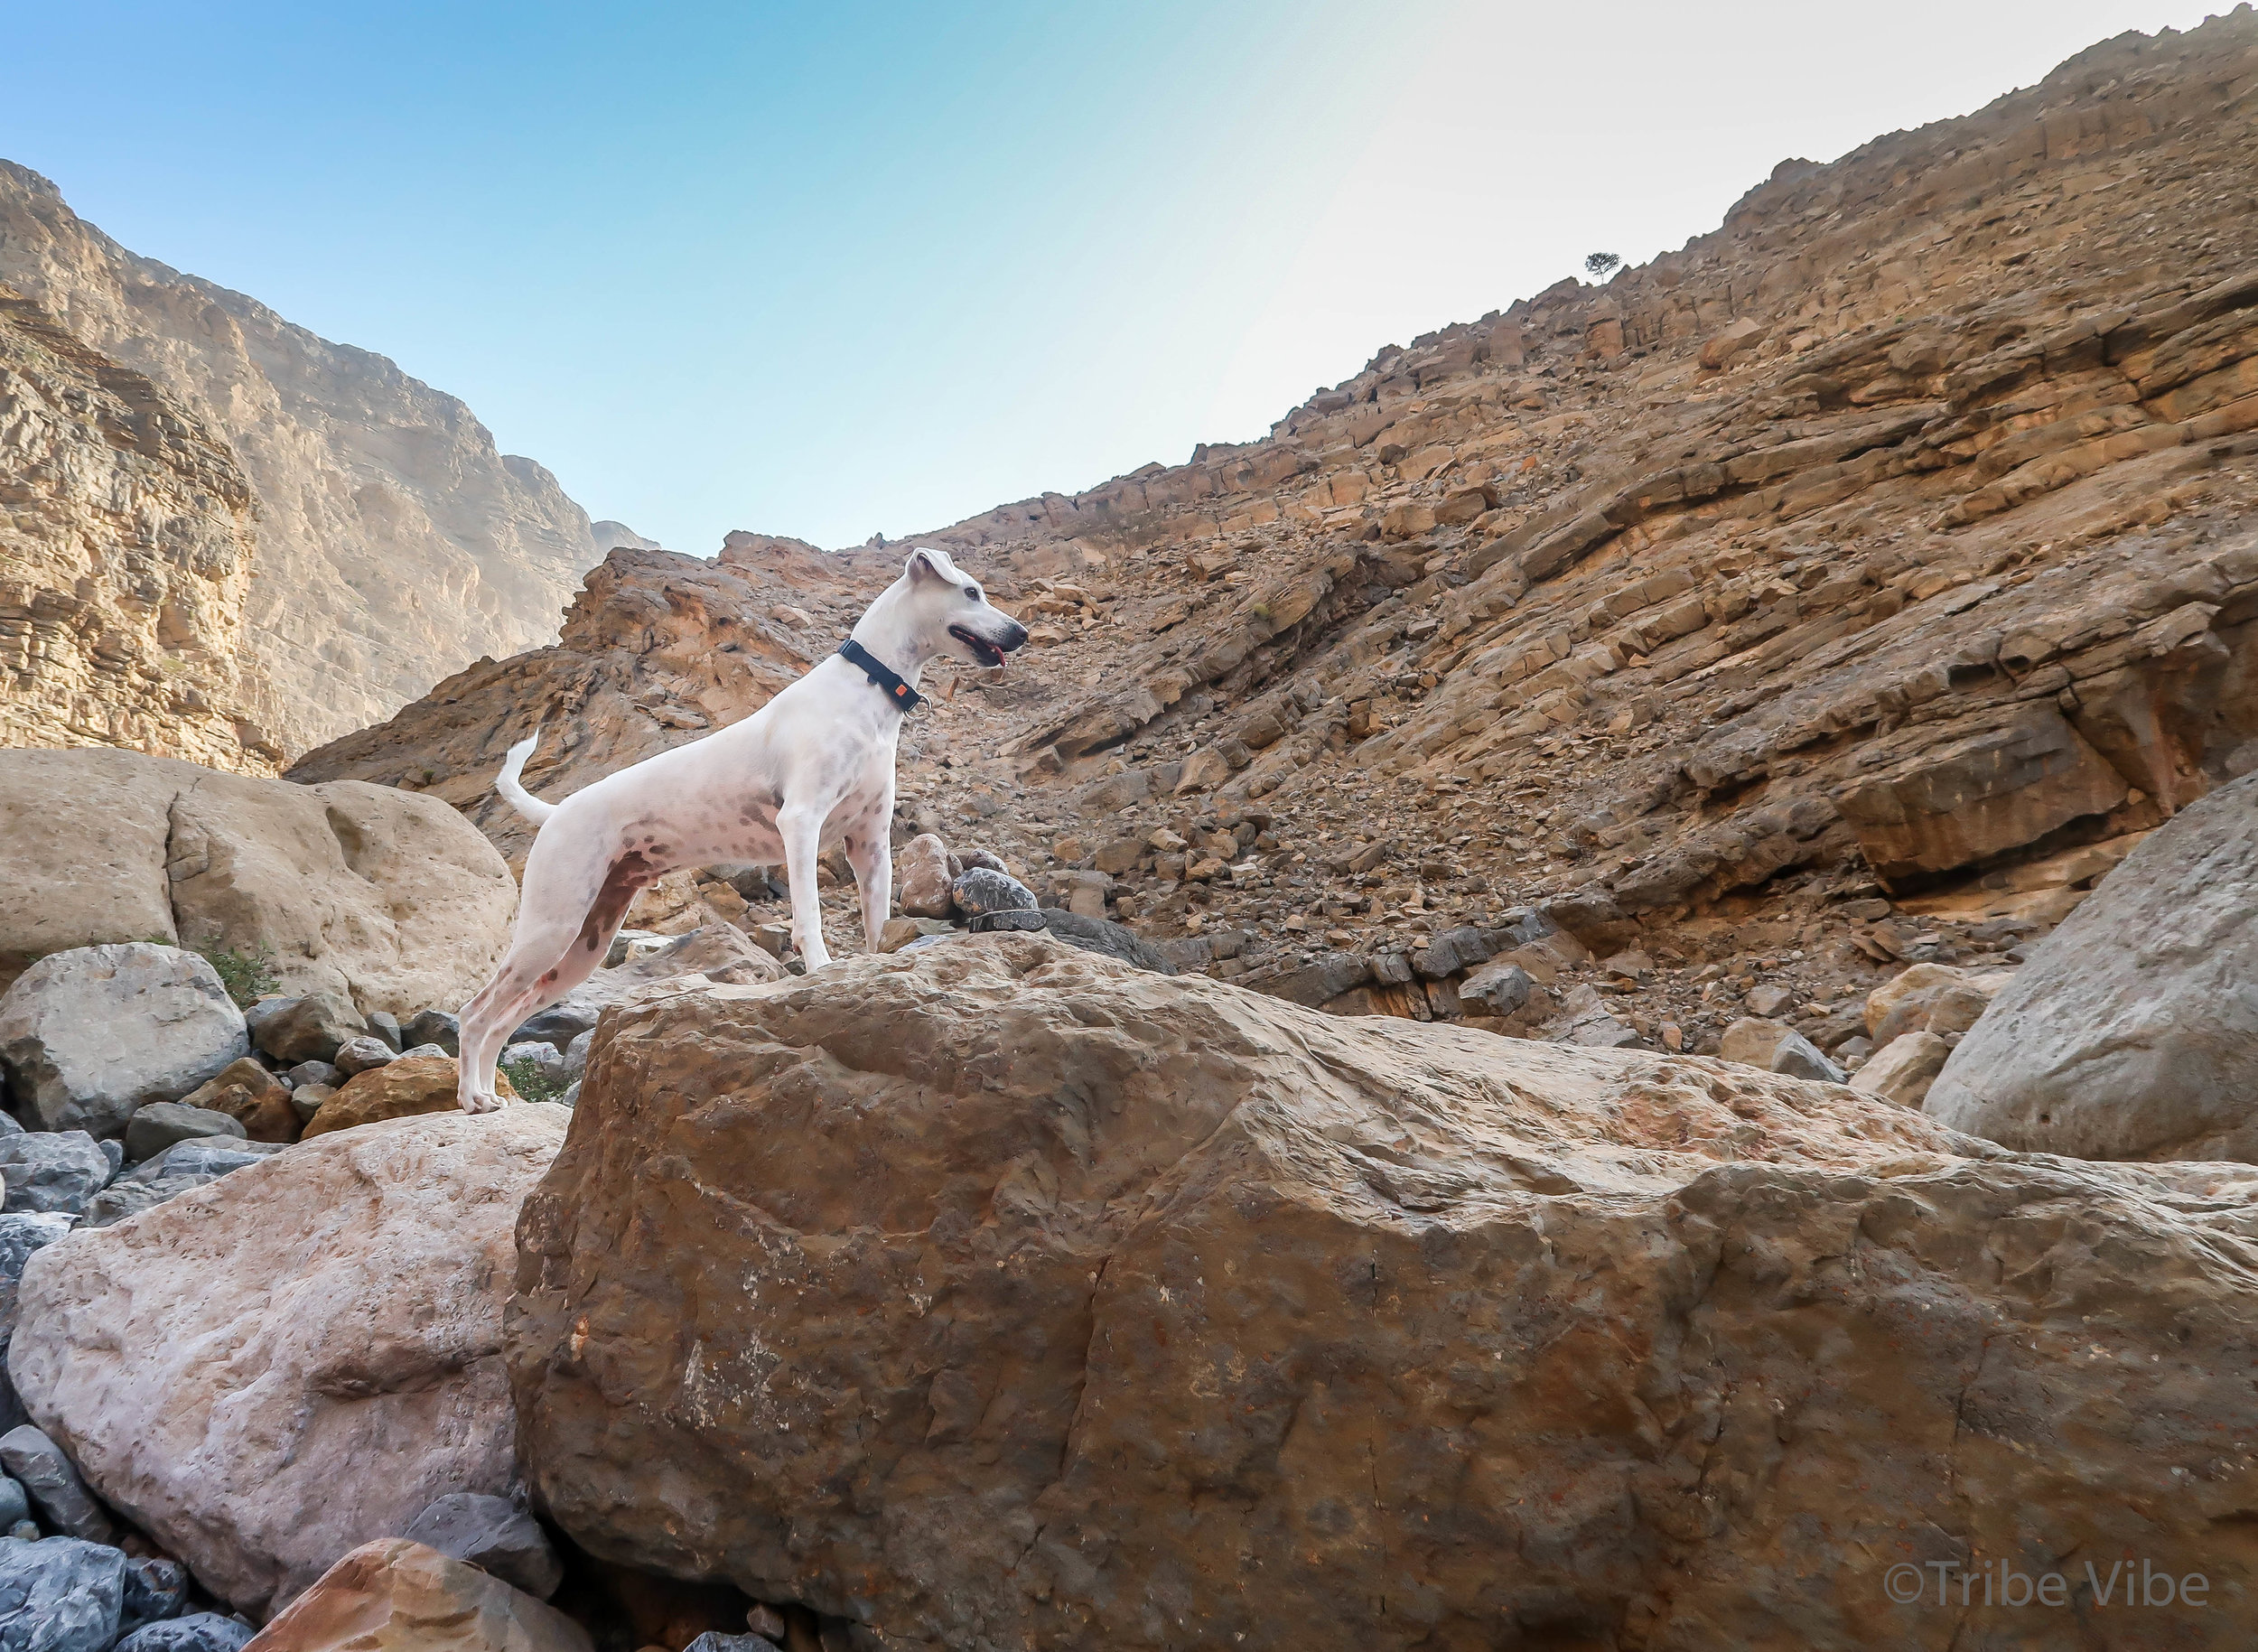 Spice enjoying his adventure in RAK